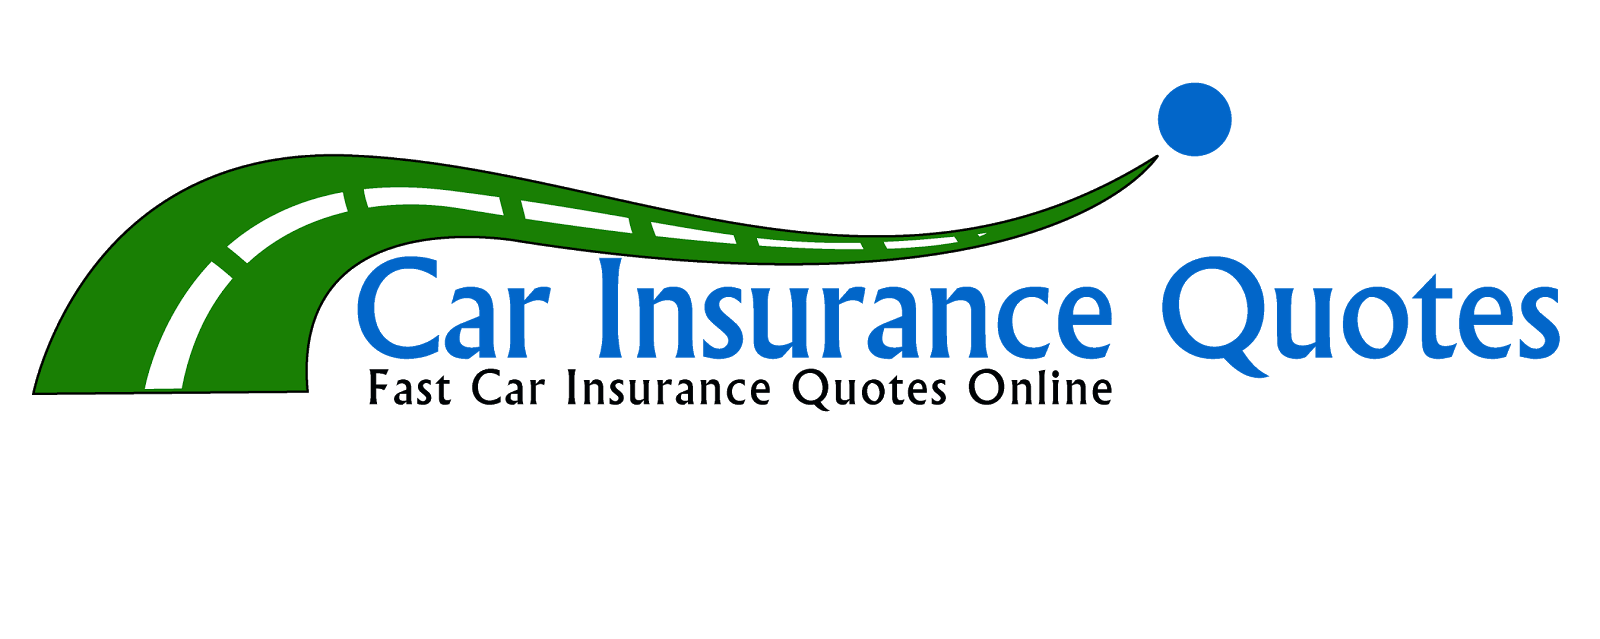 Online Insurance Quotes Magnificent Free Car Insurance Quotes Online  Places To Visit  Pinterest . Design Ideas